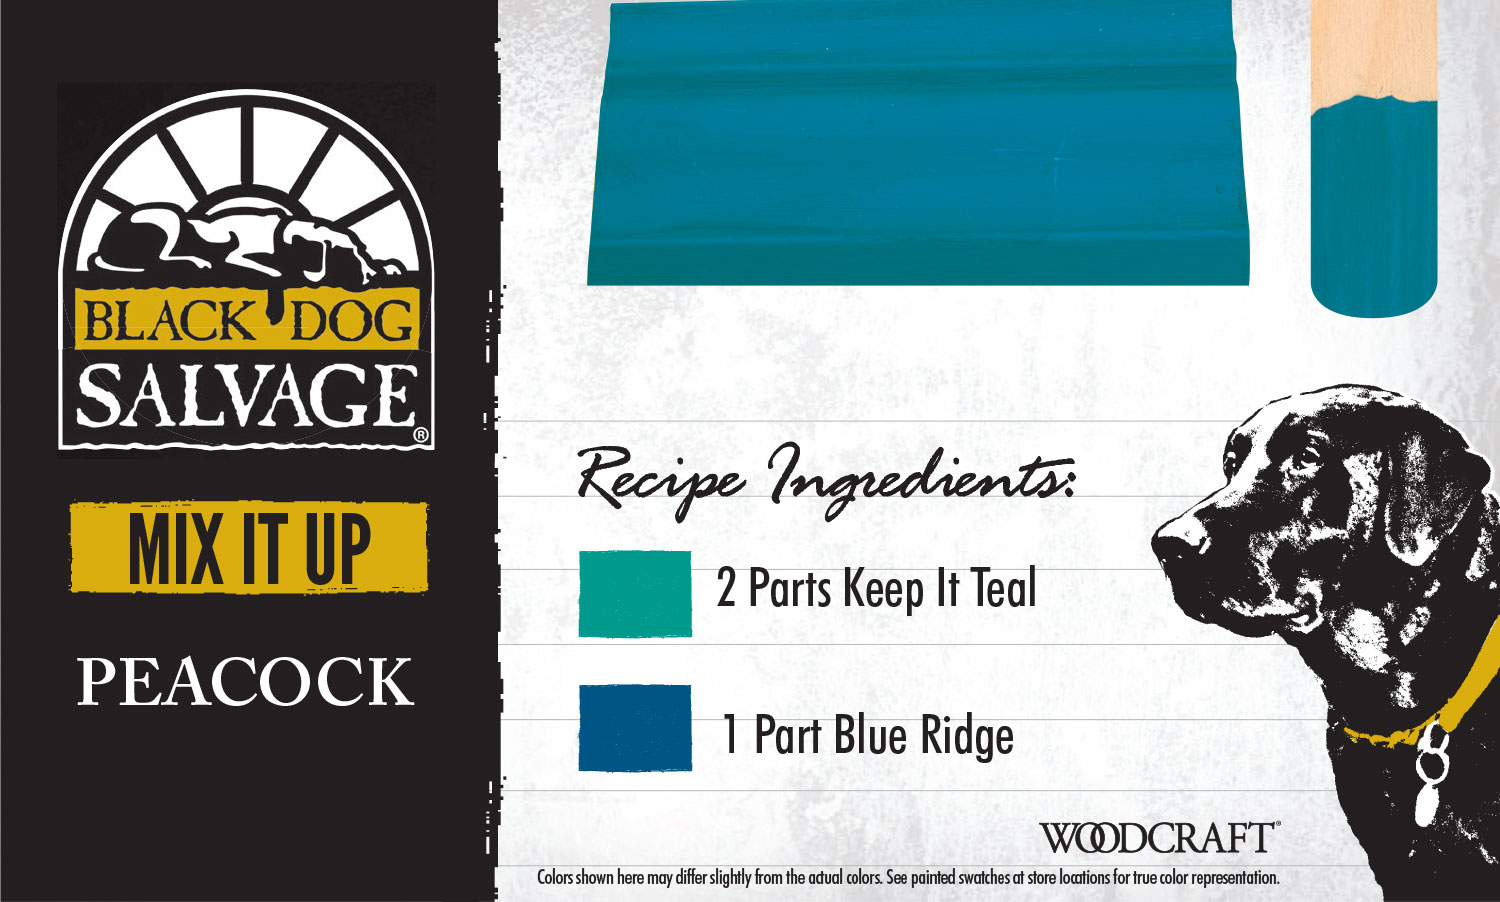 """""""Peacock"""" is made from 2 Parts """"Keep It Teal"""" and 1 Part"""" Blue Ridge"""""""